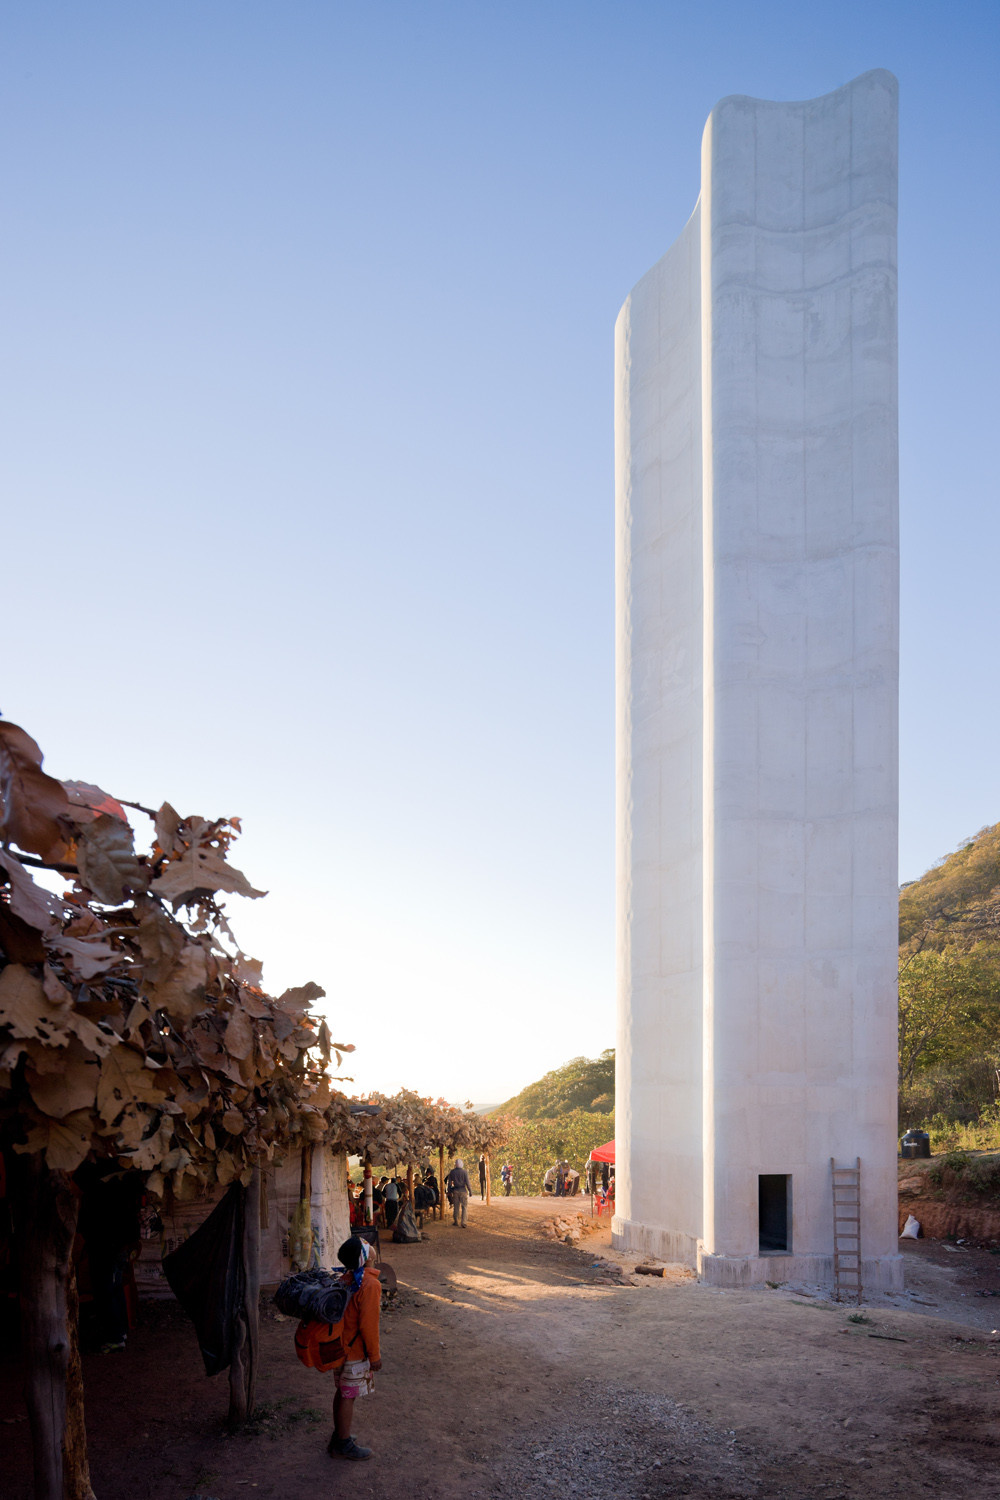 Cerro del Obispo Lookout Point / Christ & Gantenbein, © Iwan Baan